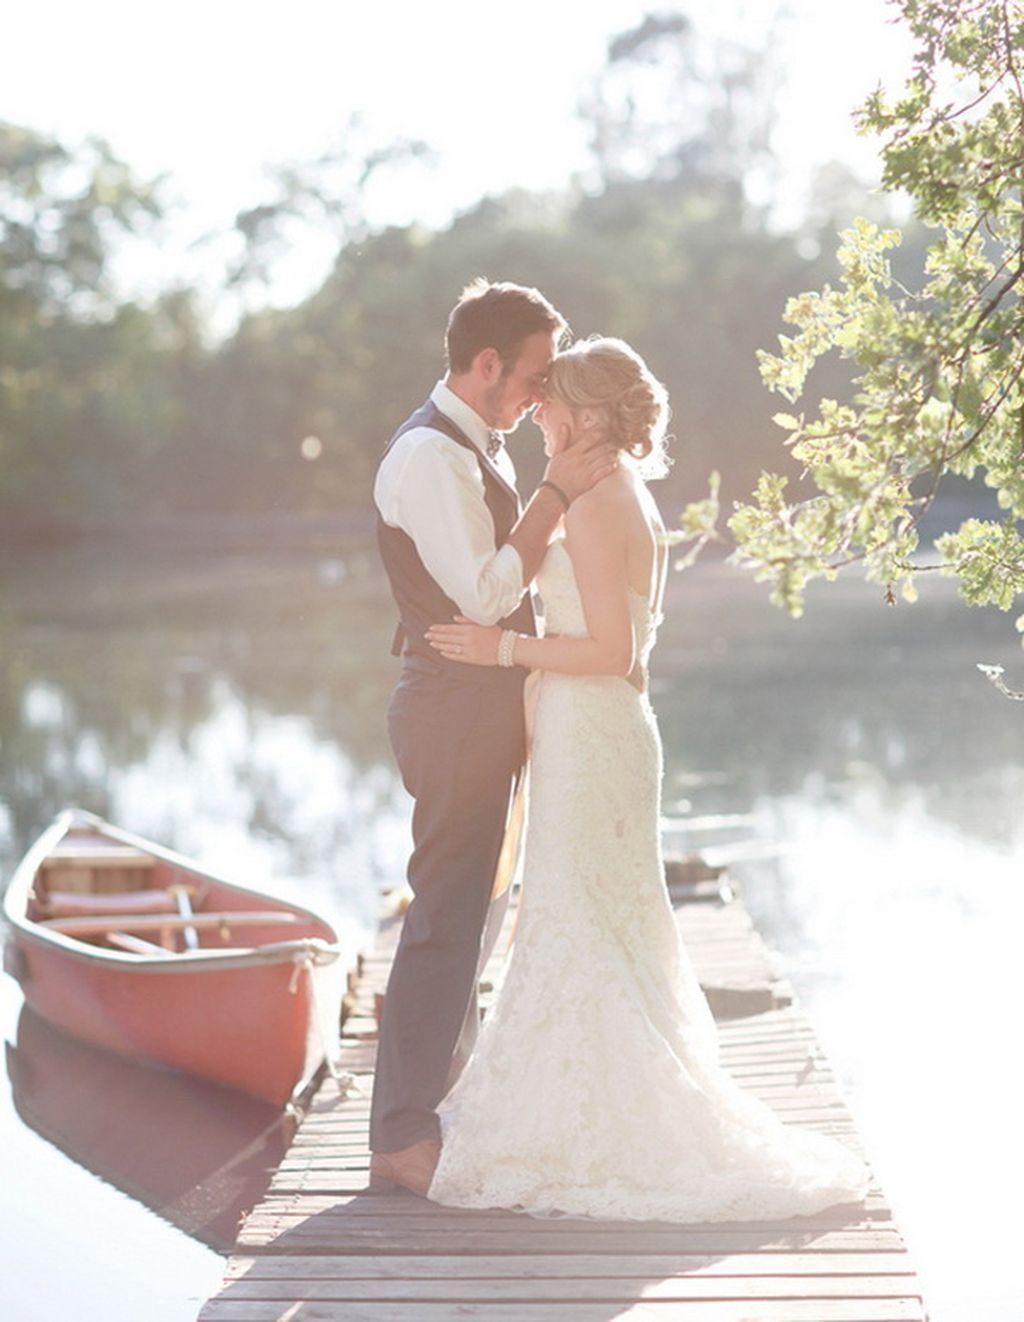 casual outdoor wedding dress ideas to makes you look gorgeous